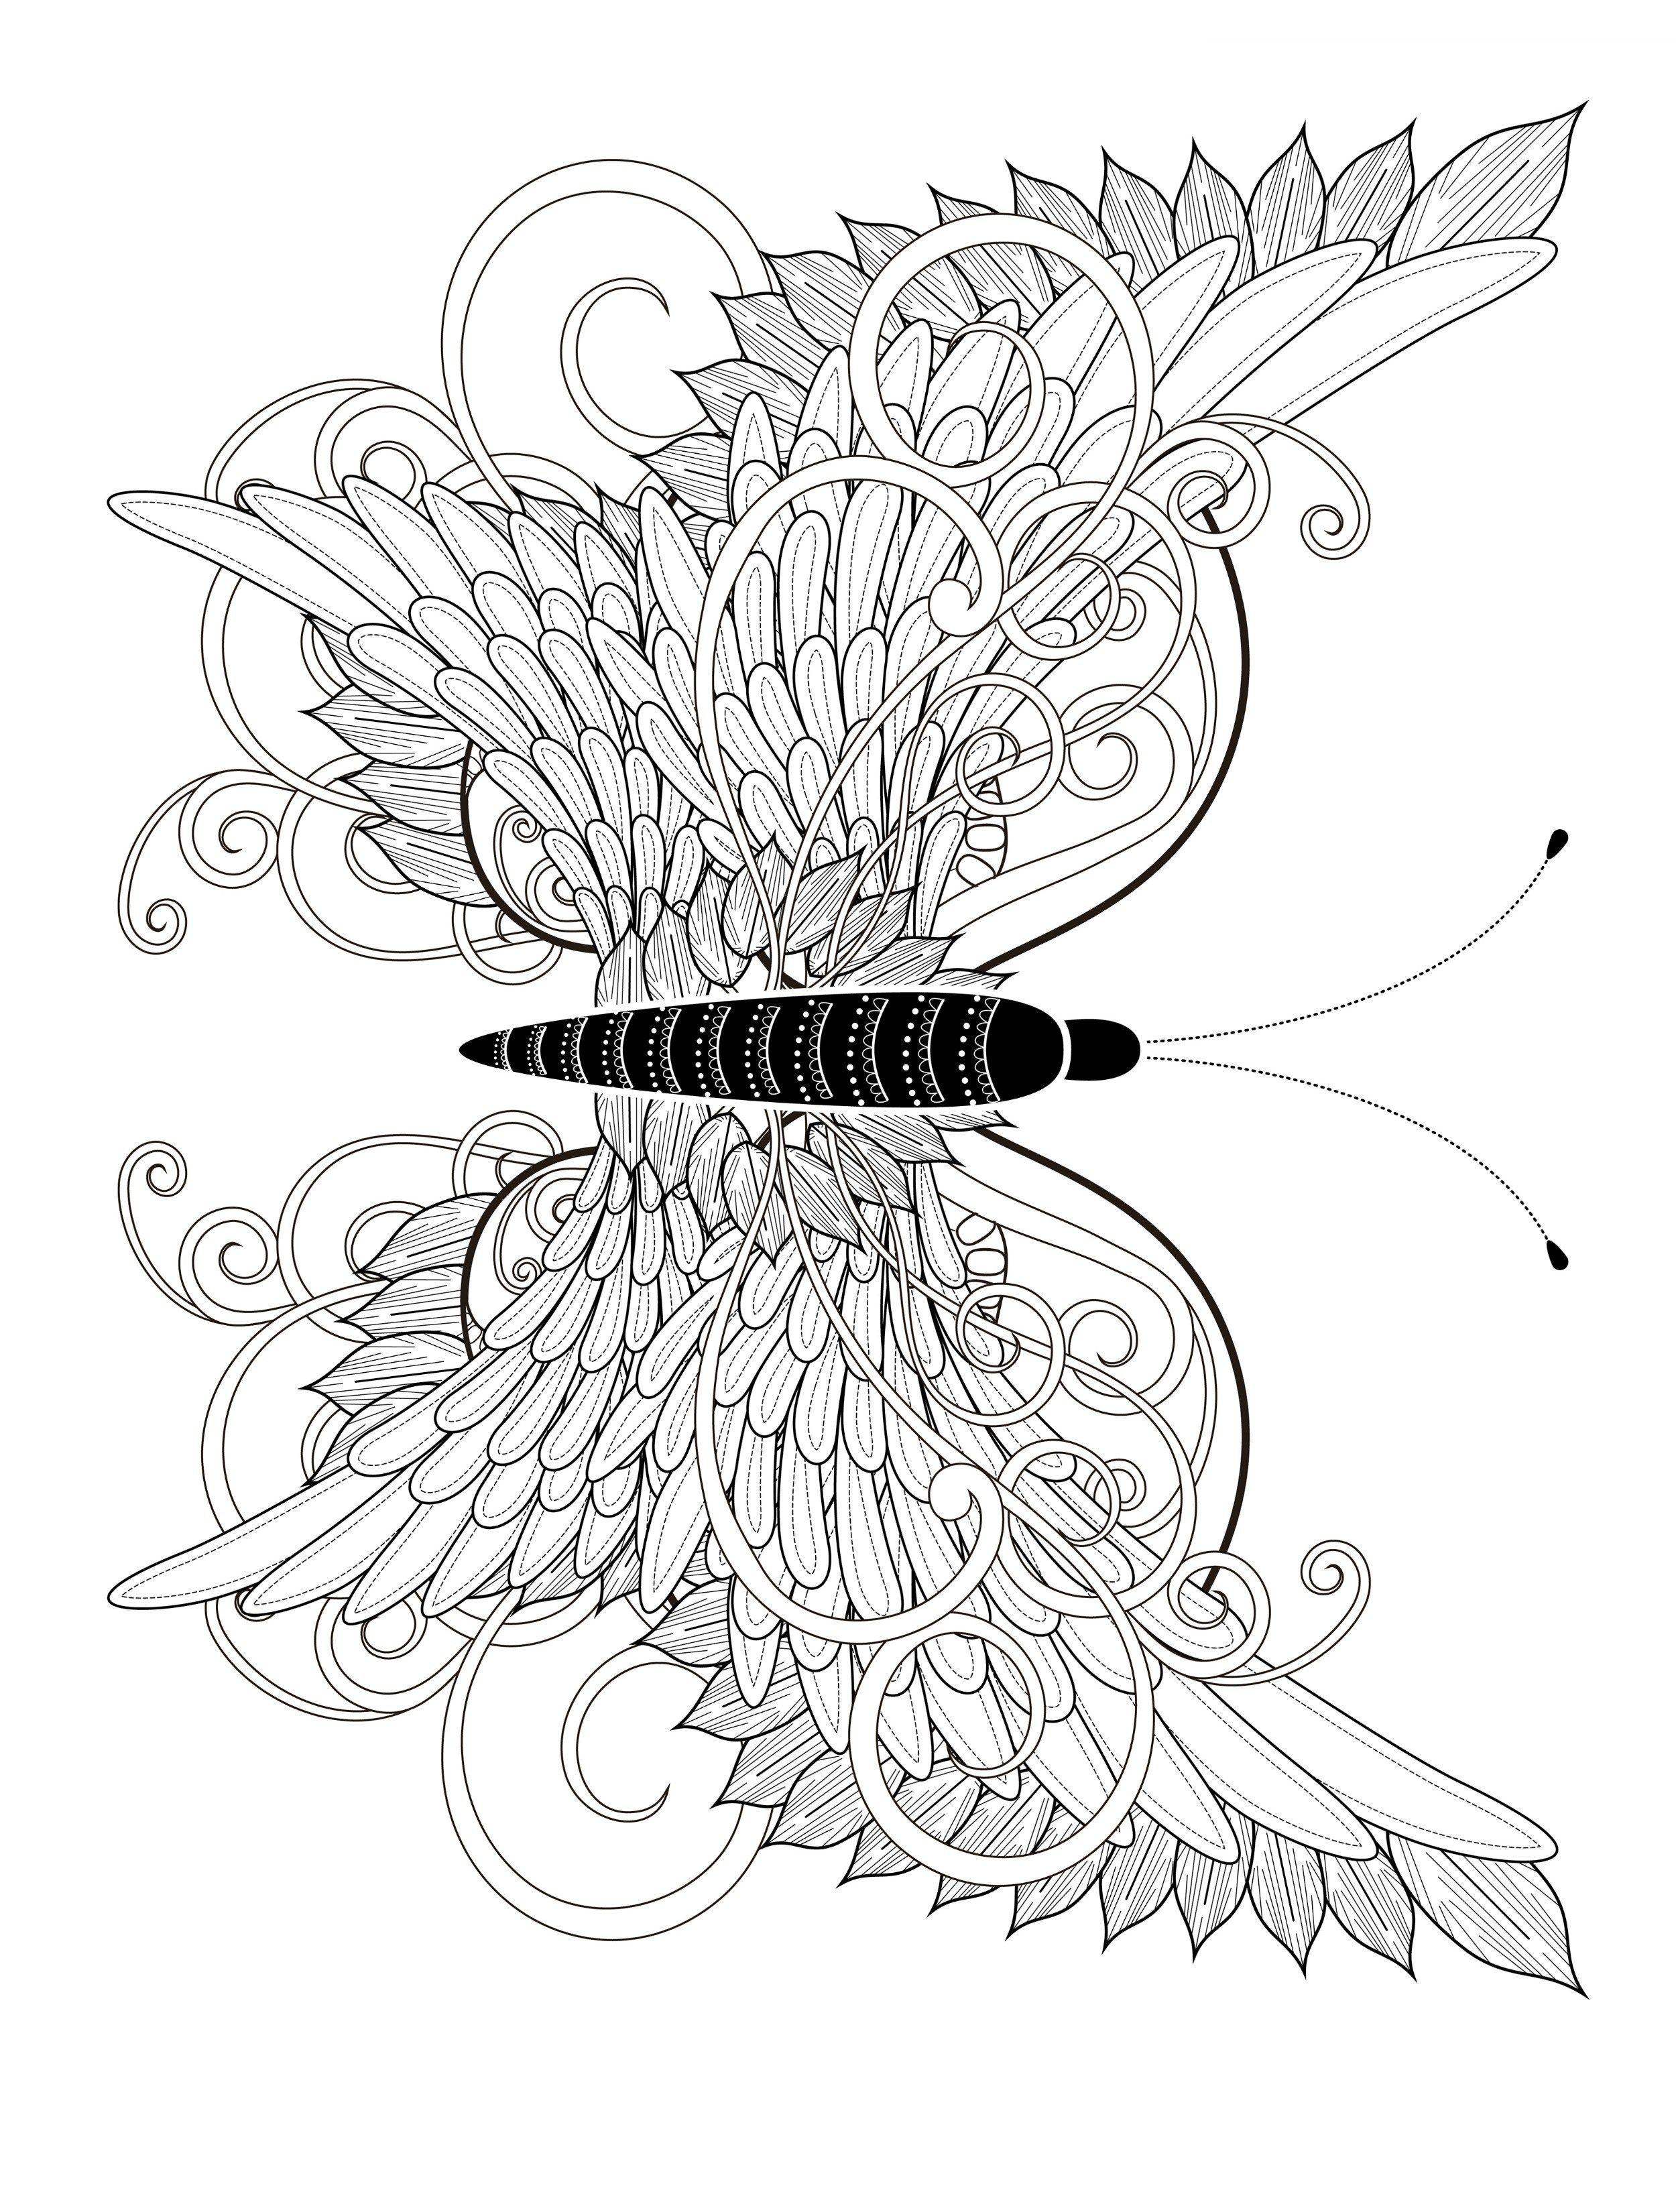 23 Free Printable Insect & Animal Adult Coloring Pages | colorzzz ...